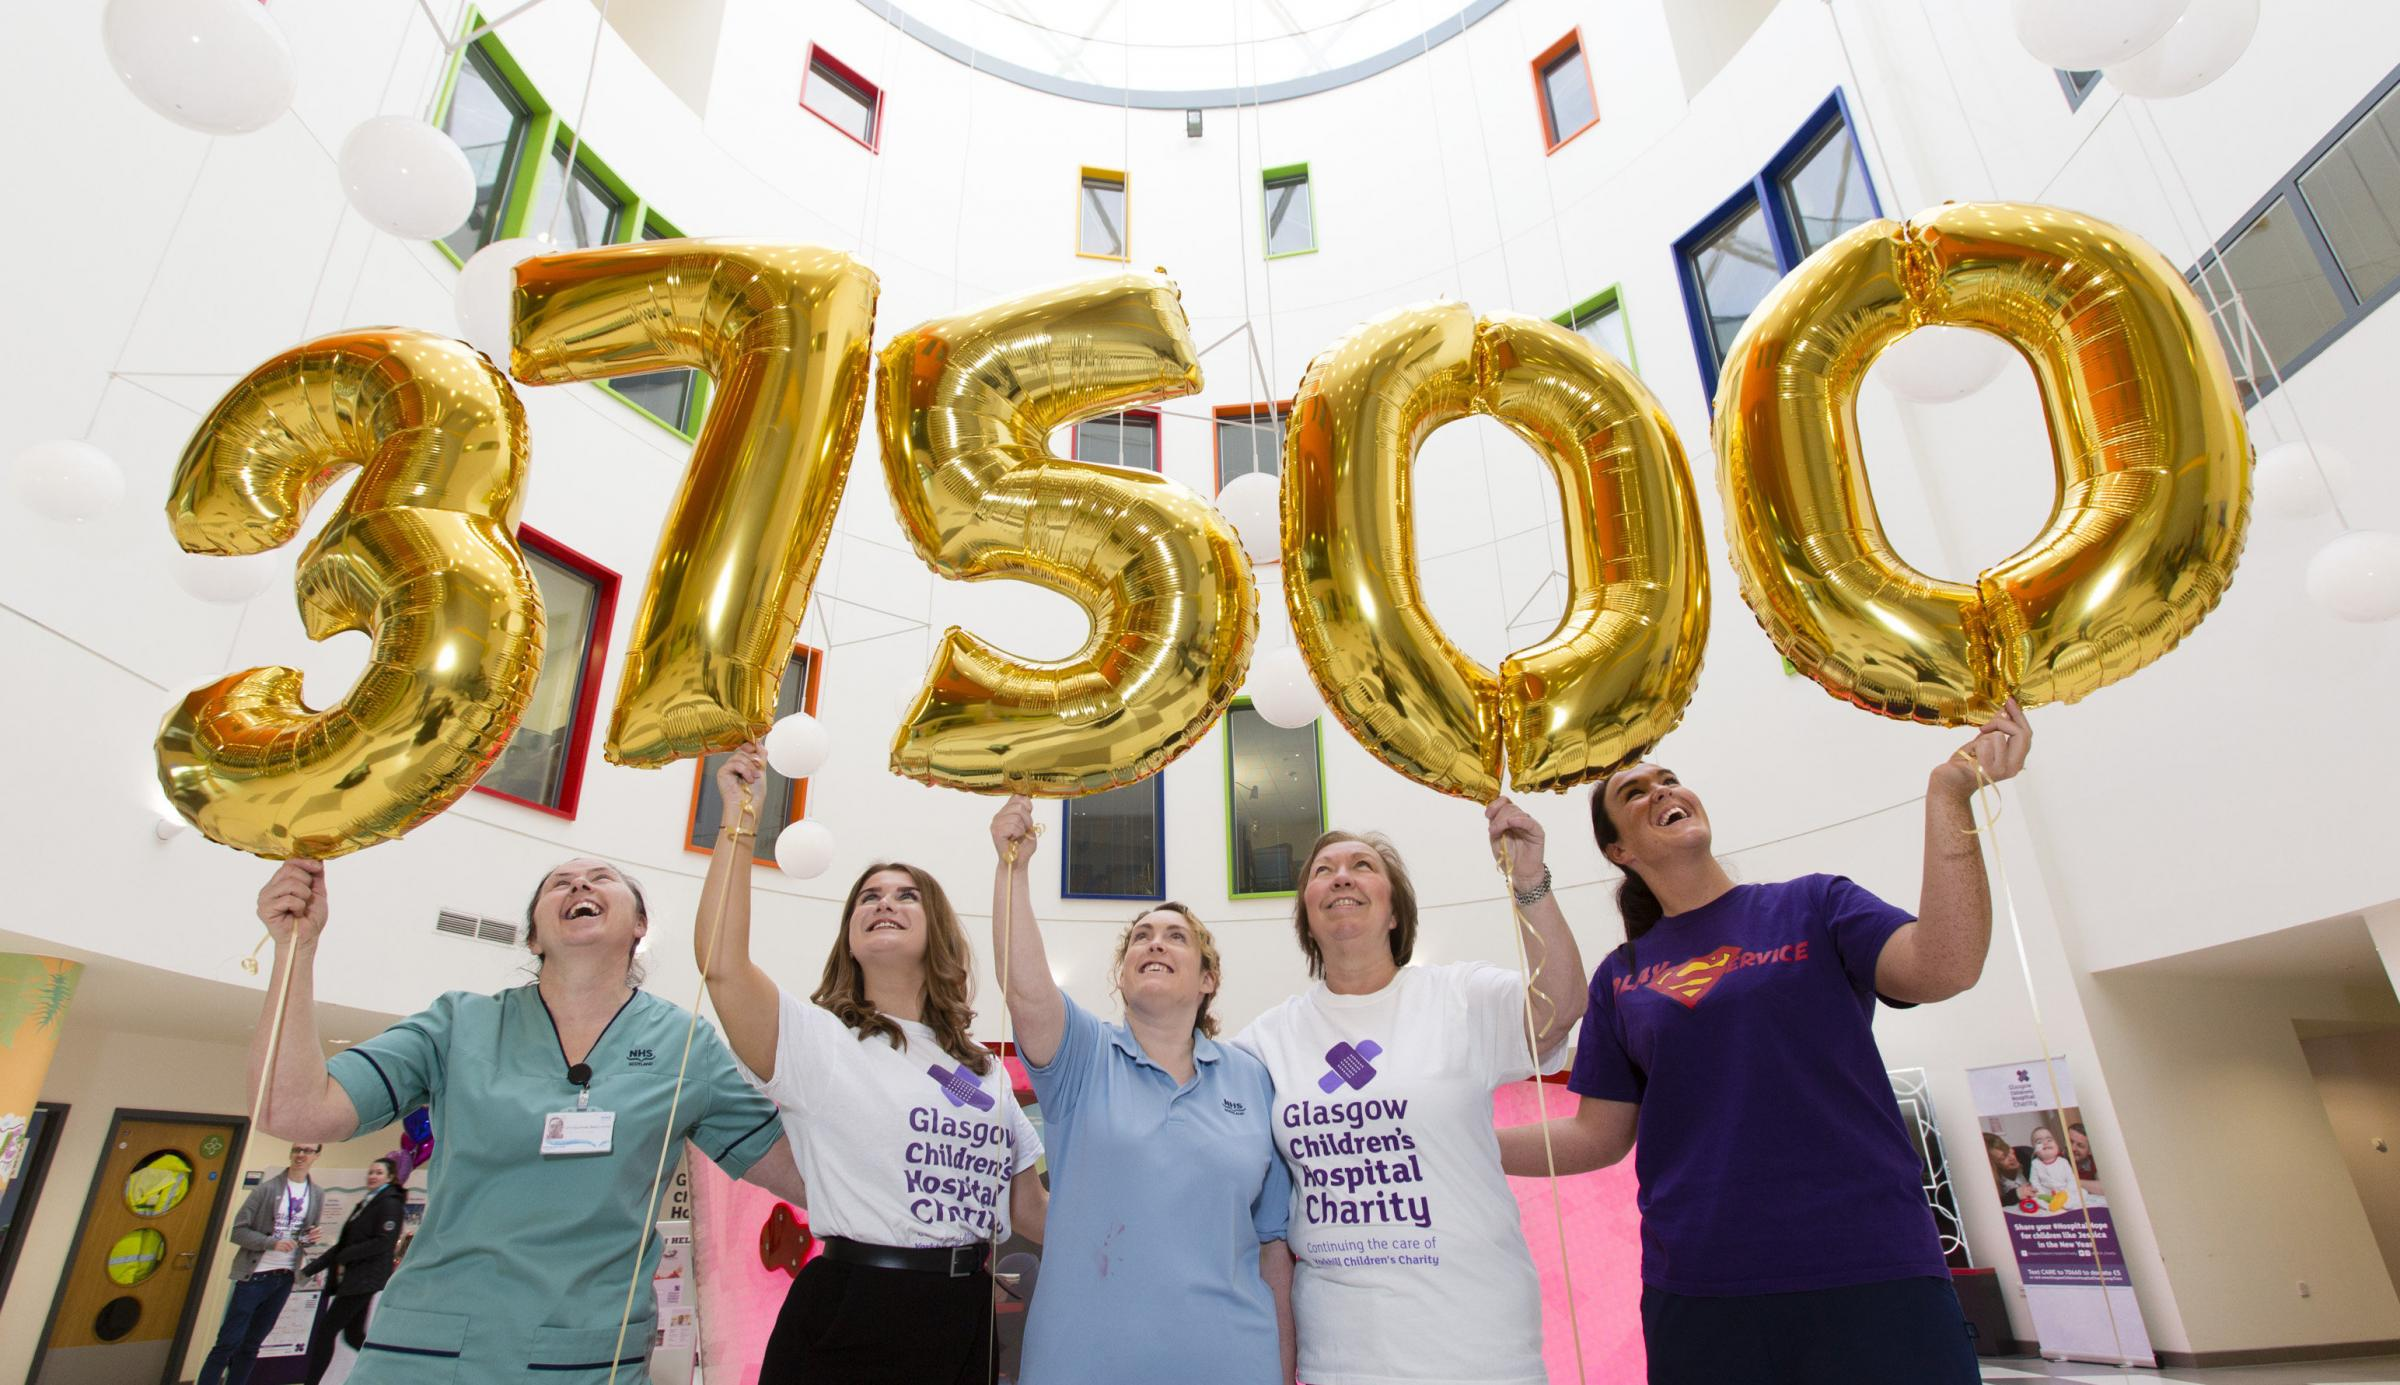 Buchanan Galleries and Glasgow Children's Hospital Charity staff celebrate the shopping centre raising £37,500 in 2017